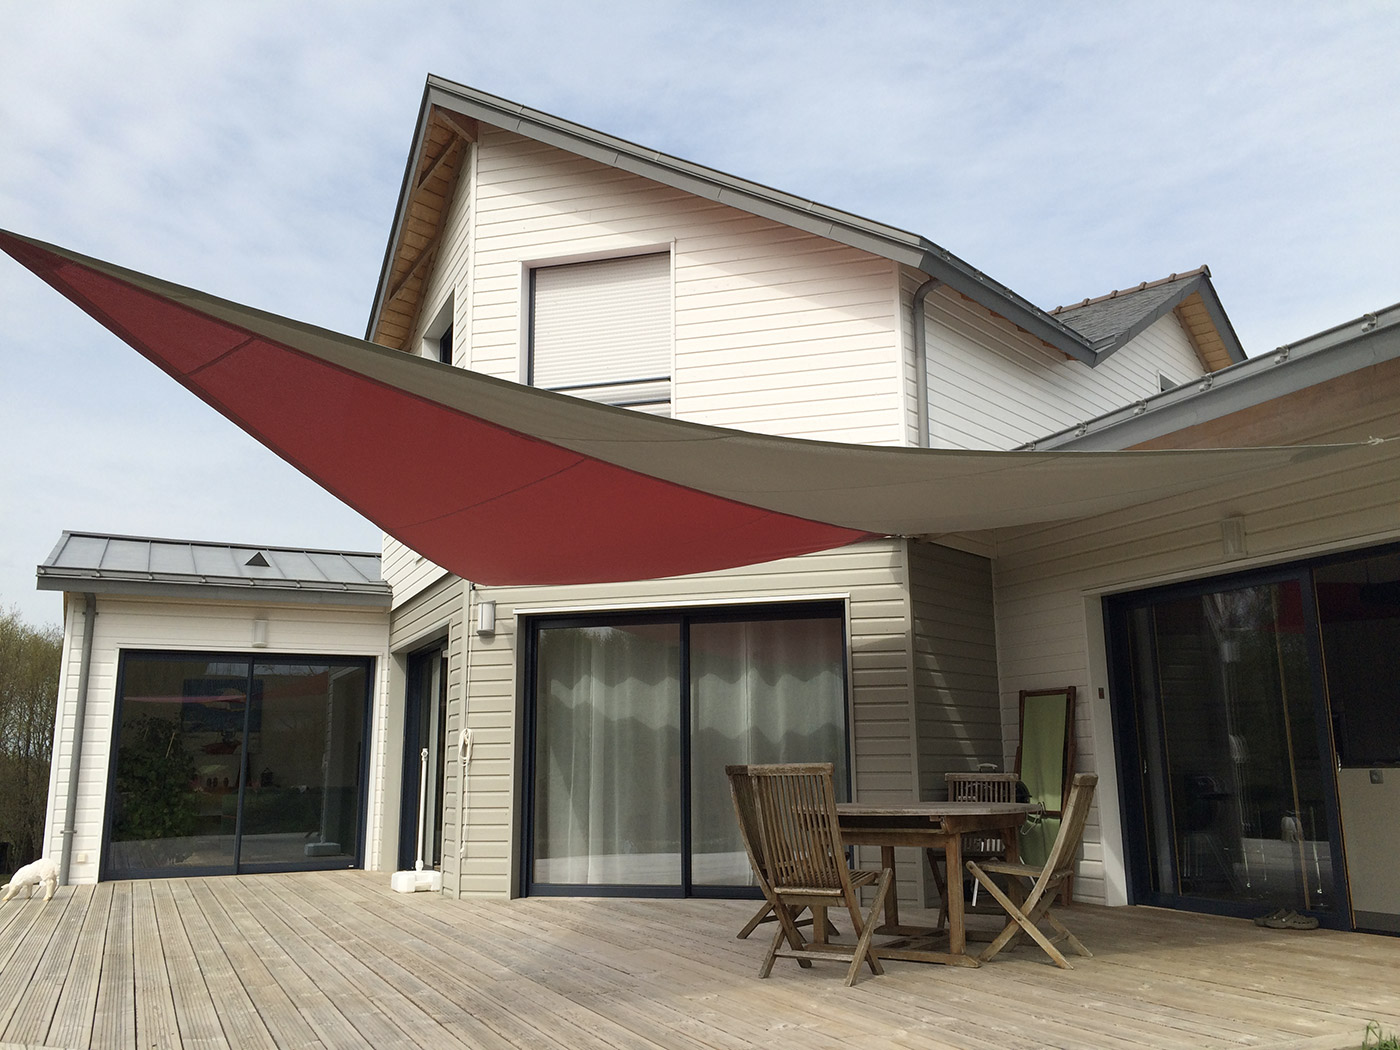 Voile D Ombrage Pour Terrasse Ombrage Terrasse Bois Wraste